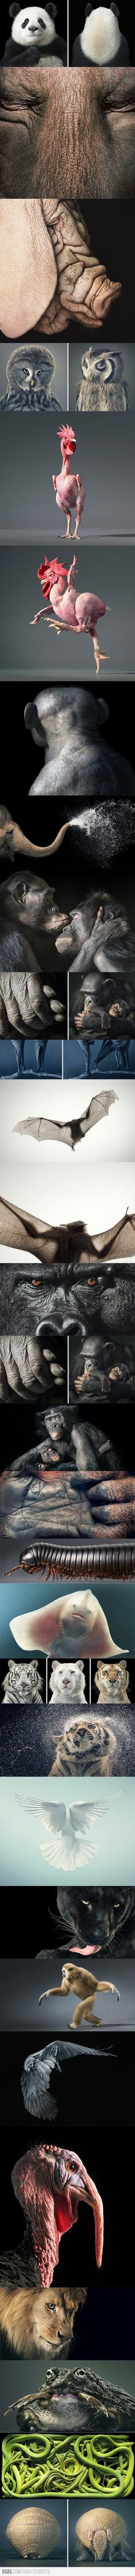 animal portraits by Tim Flach